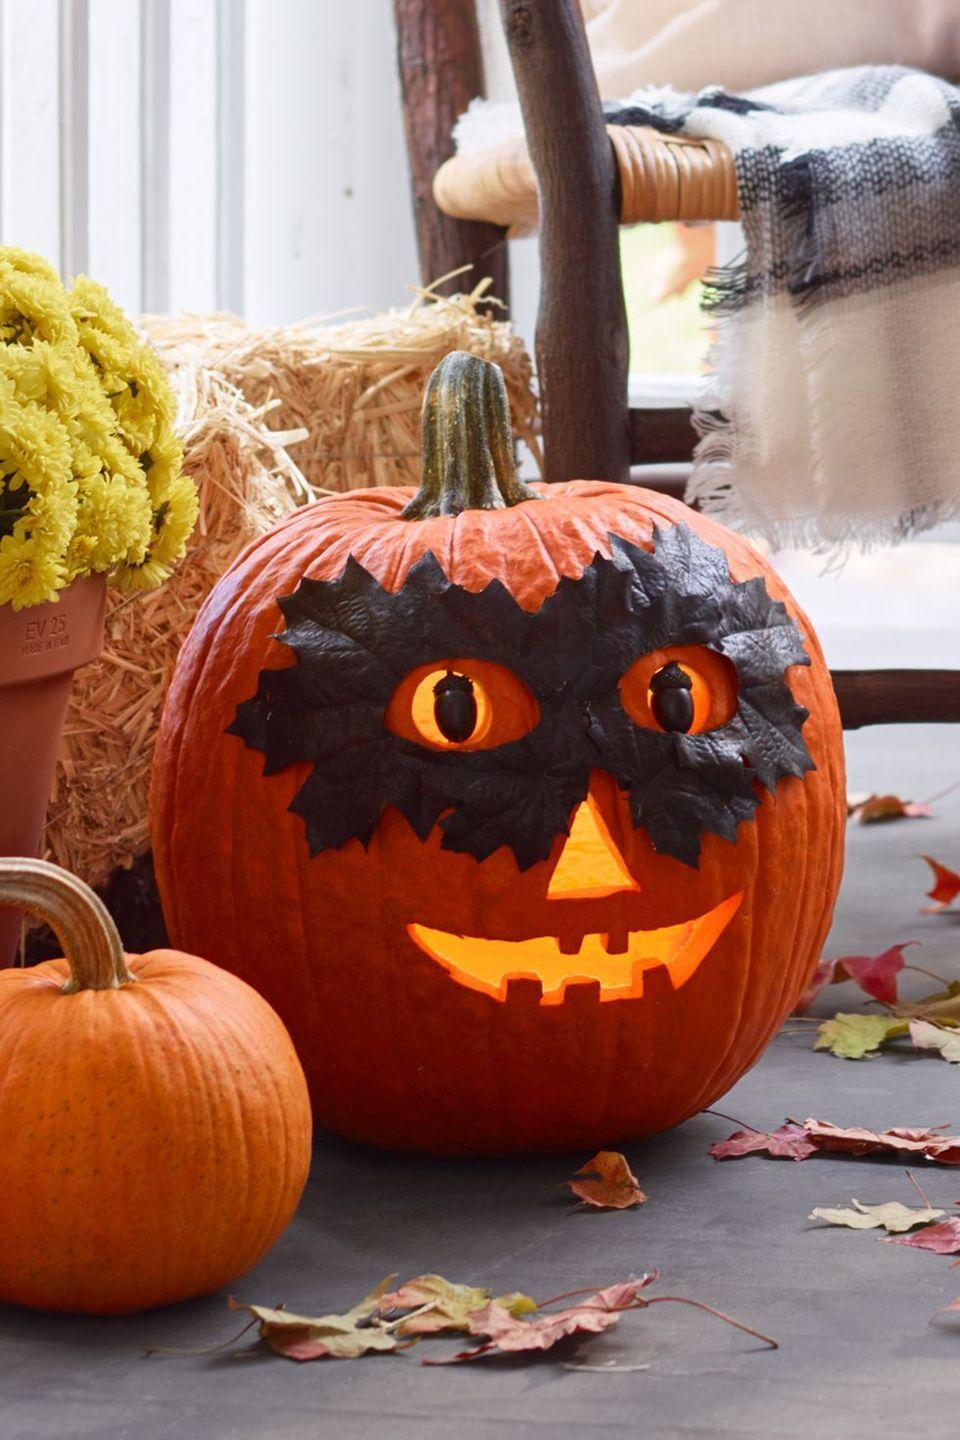 <p>Don't worry, this masked pumpkin won't steal your candy. His leaf mask is only there to help keep the mystery alive!<strong><br></strong></p><p><strong>Make the Masked Pumpkin:</strong> Paint eight real or artificial leaves with black spray paint; let dry. Layer leaves into a mask shape; hot-glue together. Cut eyeholes in mask. Trace eyeholes onto large orange pumpkin; carve. Glue black-painted acorns to straight pins, then push into eyeholes for pupils. Secure leaf mask to pumpkin with hot glue.</p>